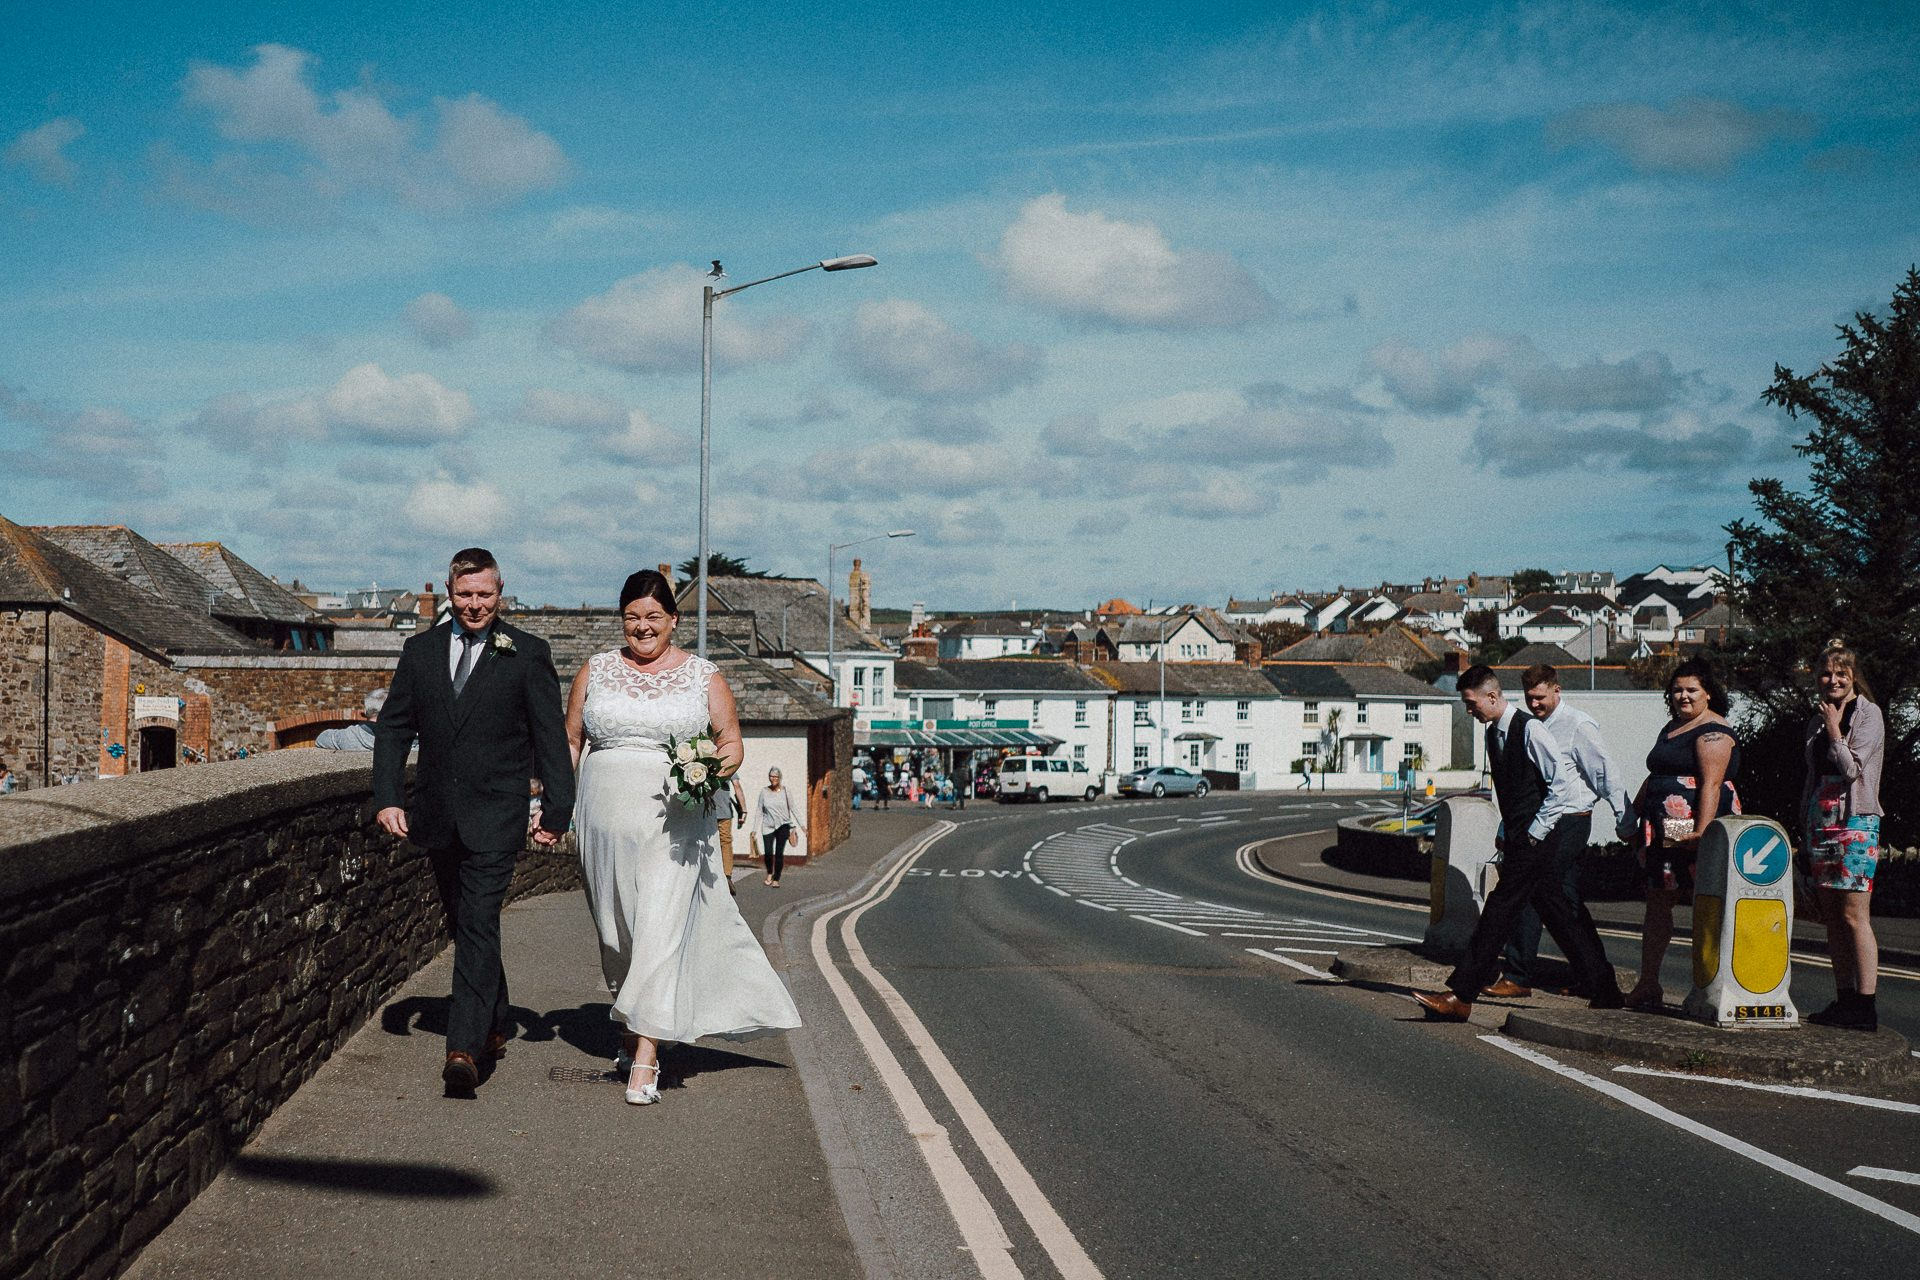 0108-DEVON-SOMERSET-WEDDING-PHOTOGRAPHER-0534-BEST-OF-2019-LOUISE-MAY-DEVON-SOMERSET-WEDDING-PHOTOGRAPHY-20190910-14-31-07-20190910143107LM107295